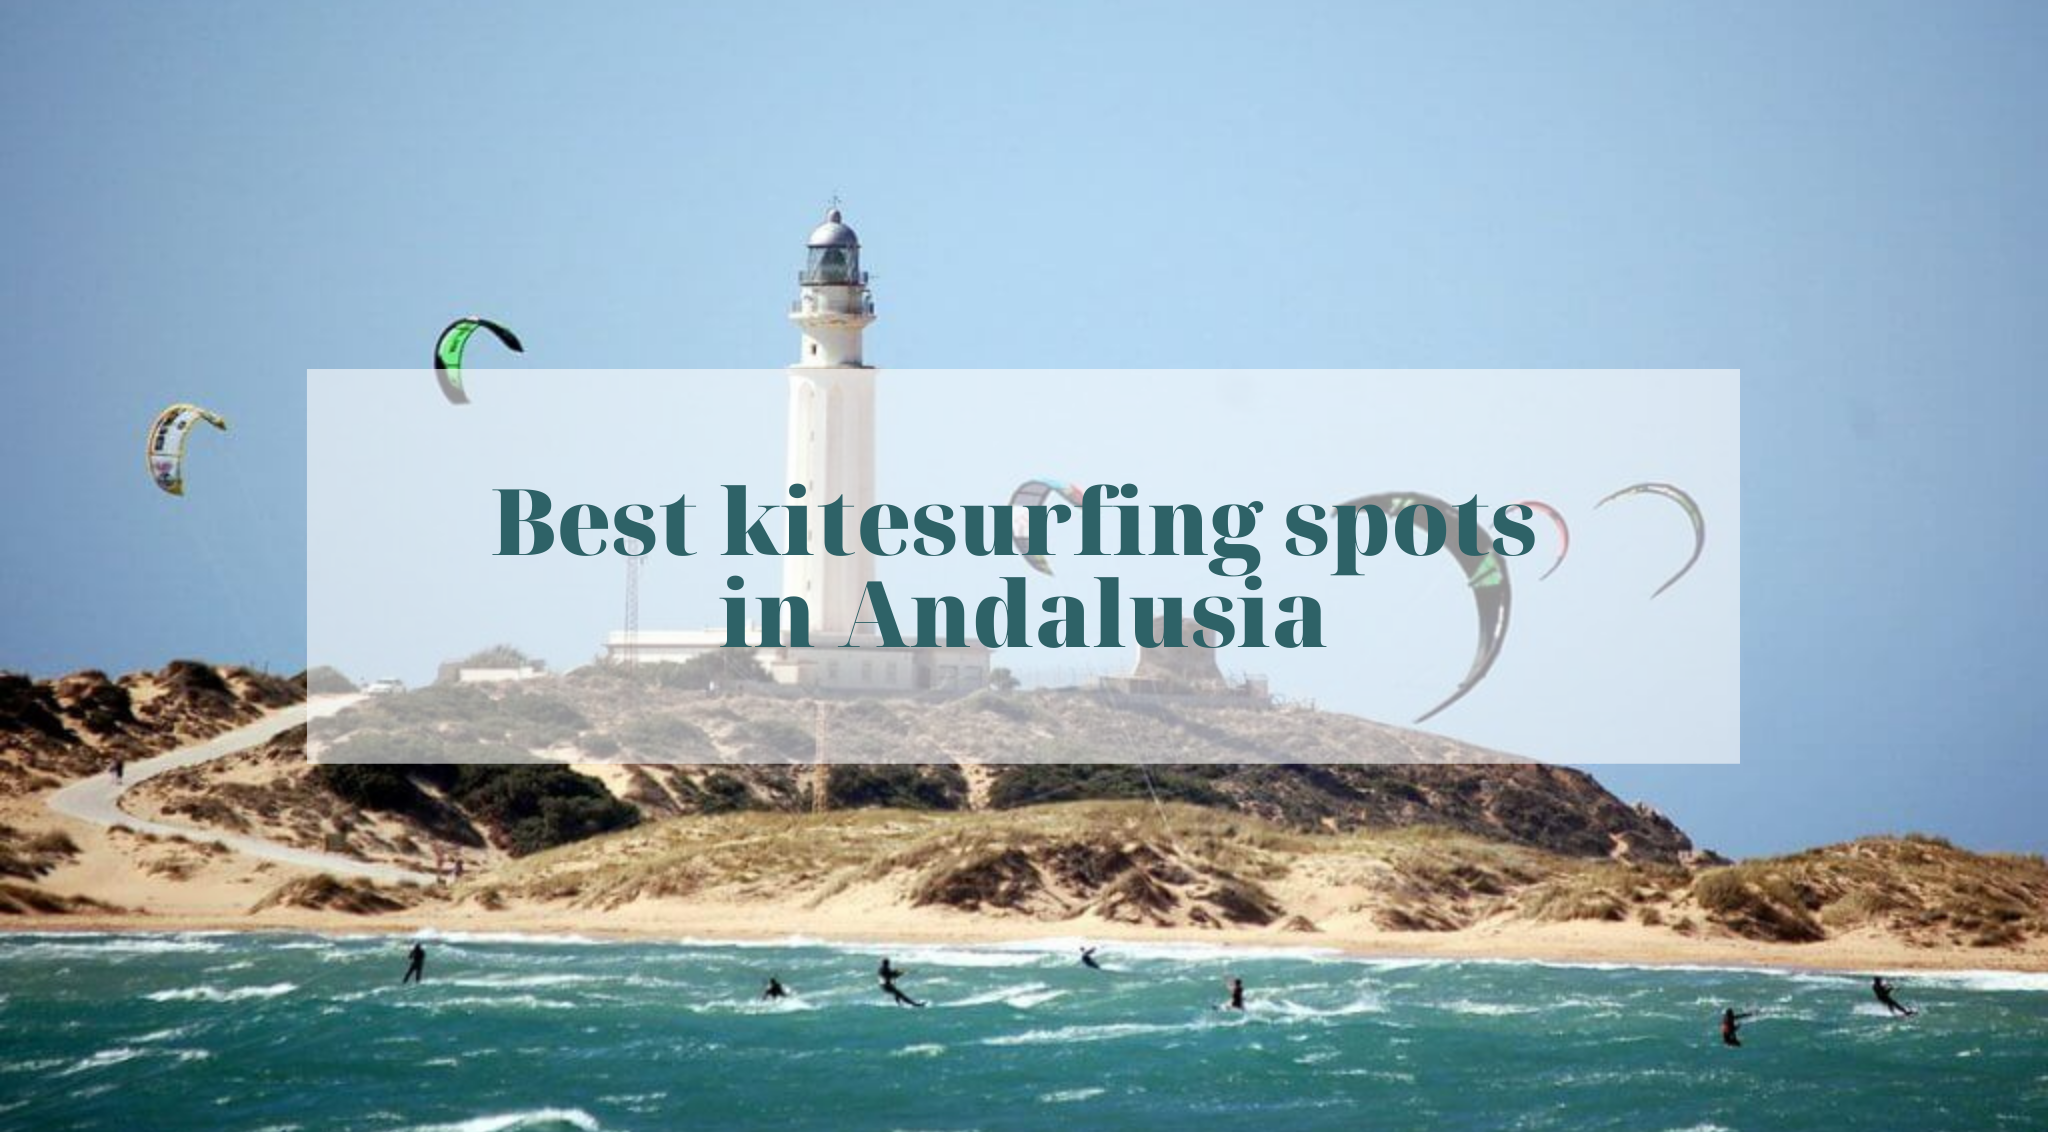 Best kitesurfing spots in Andalusia